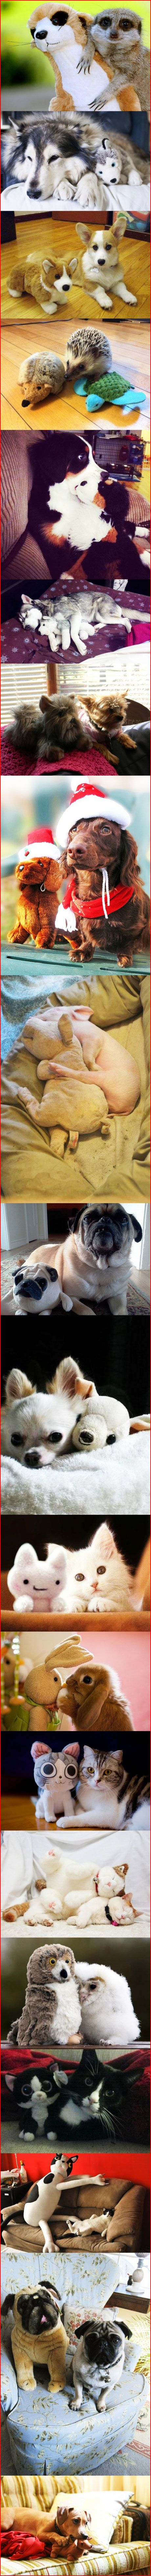 Animals with their own stuffed animal version of themselves! Cute overload, made my day!!